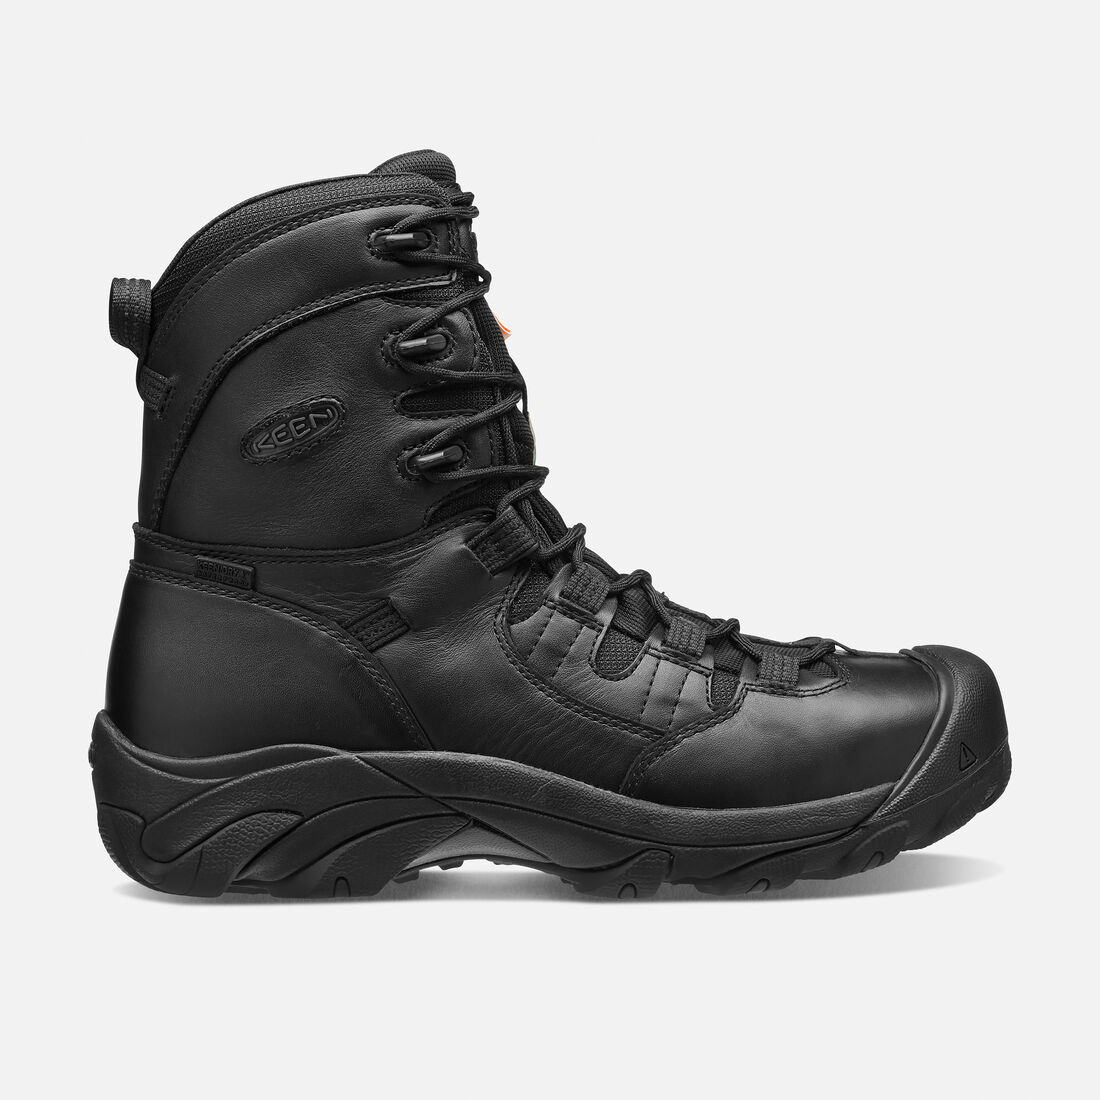 "CSA Oshawa 8"" Boot (Steel Toe) Pour homme in Black - large view."